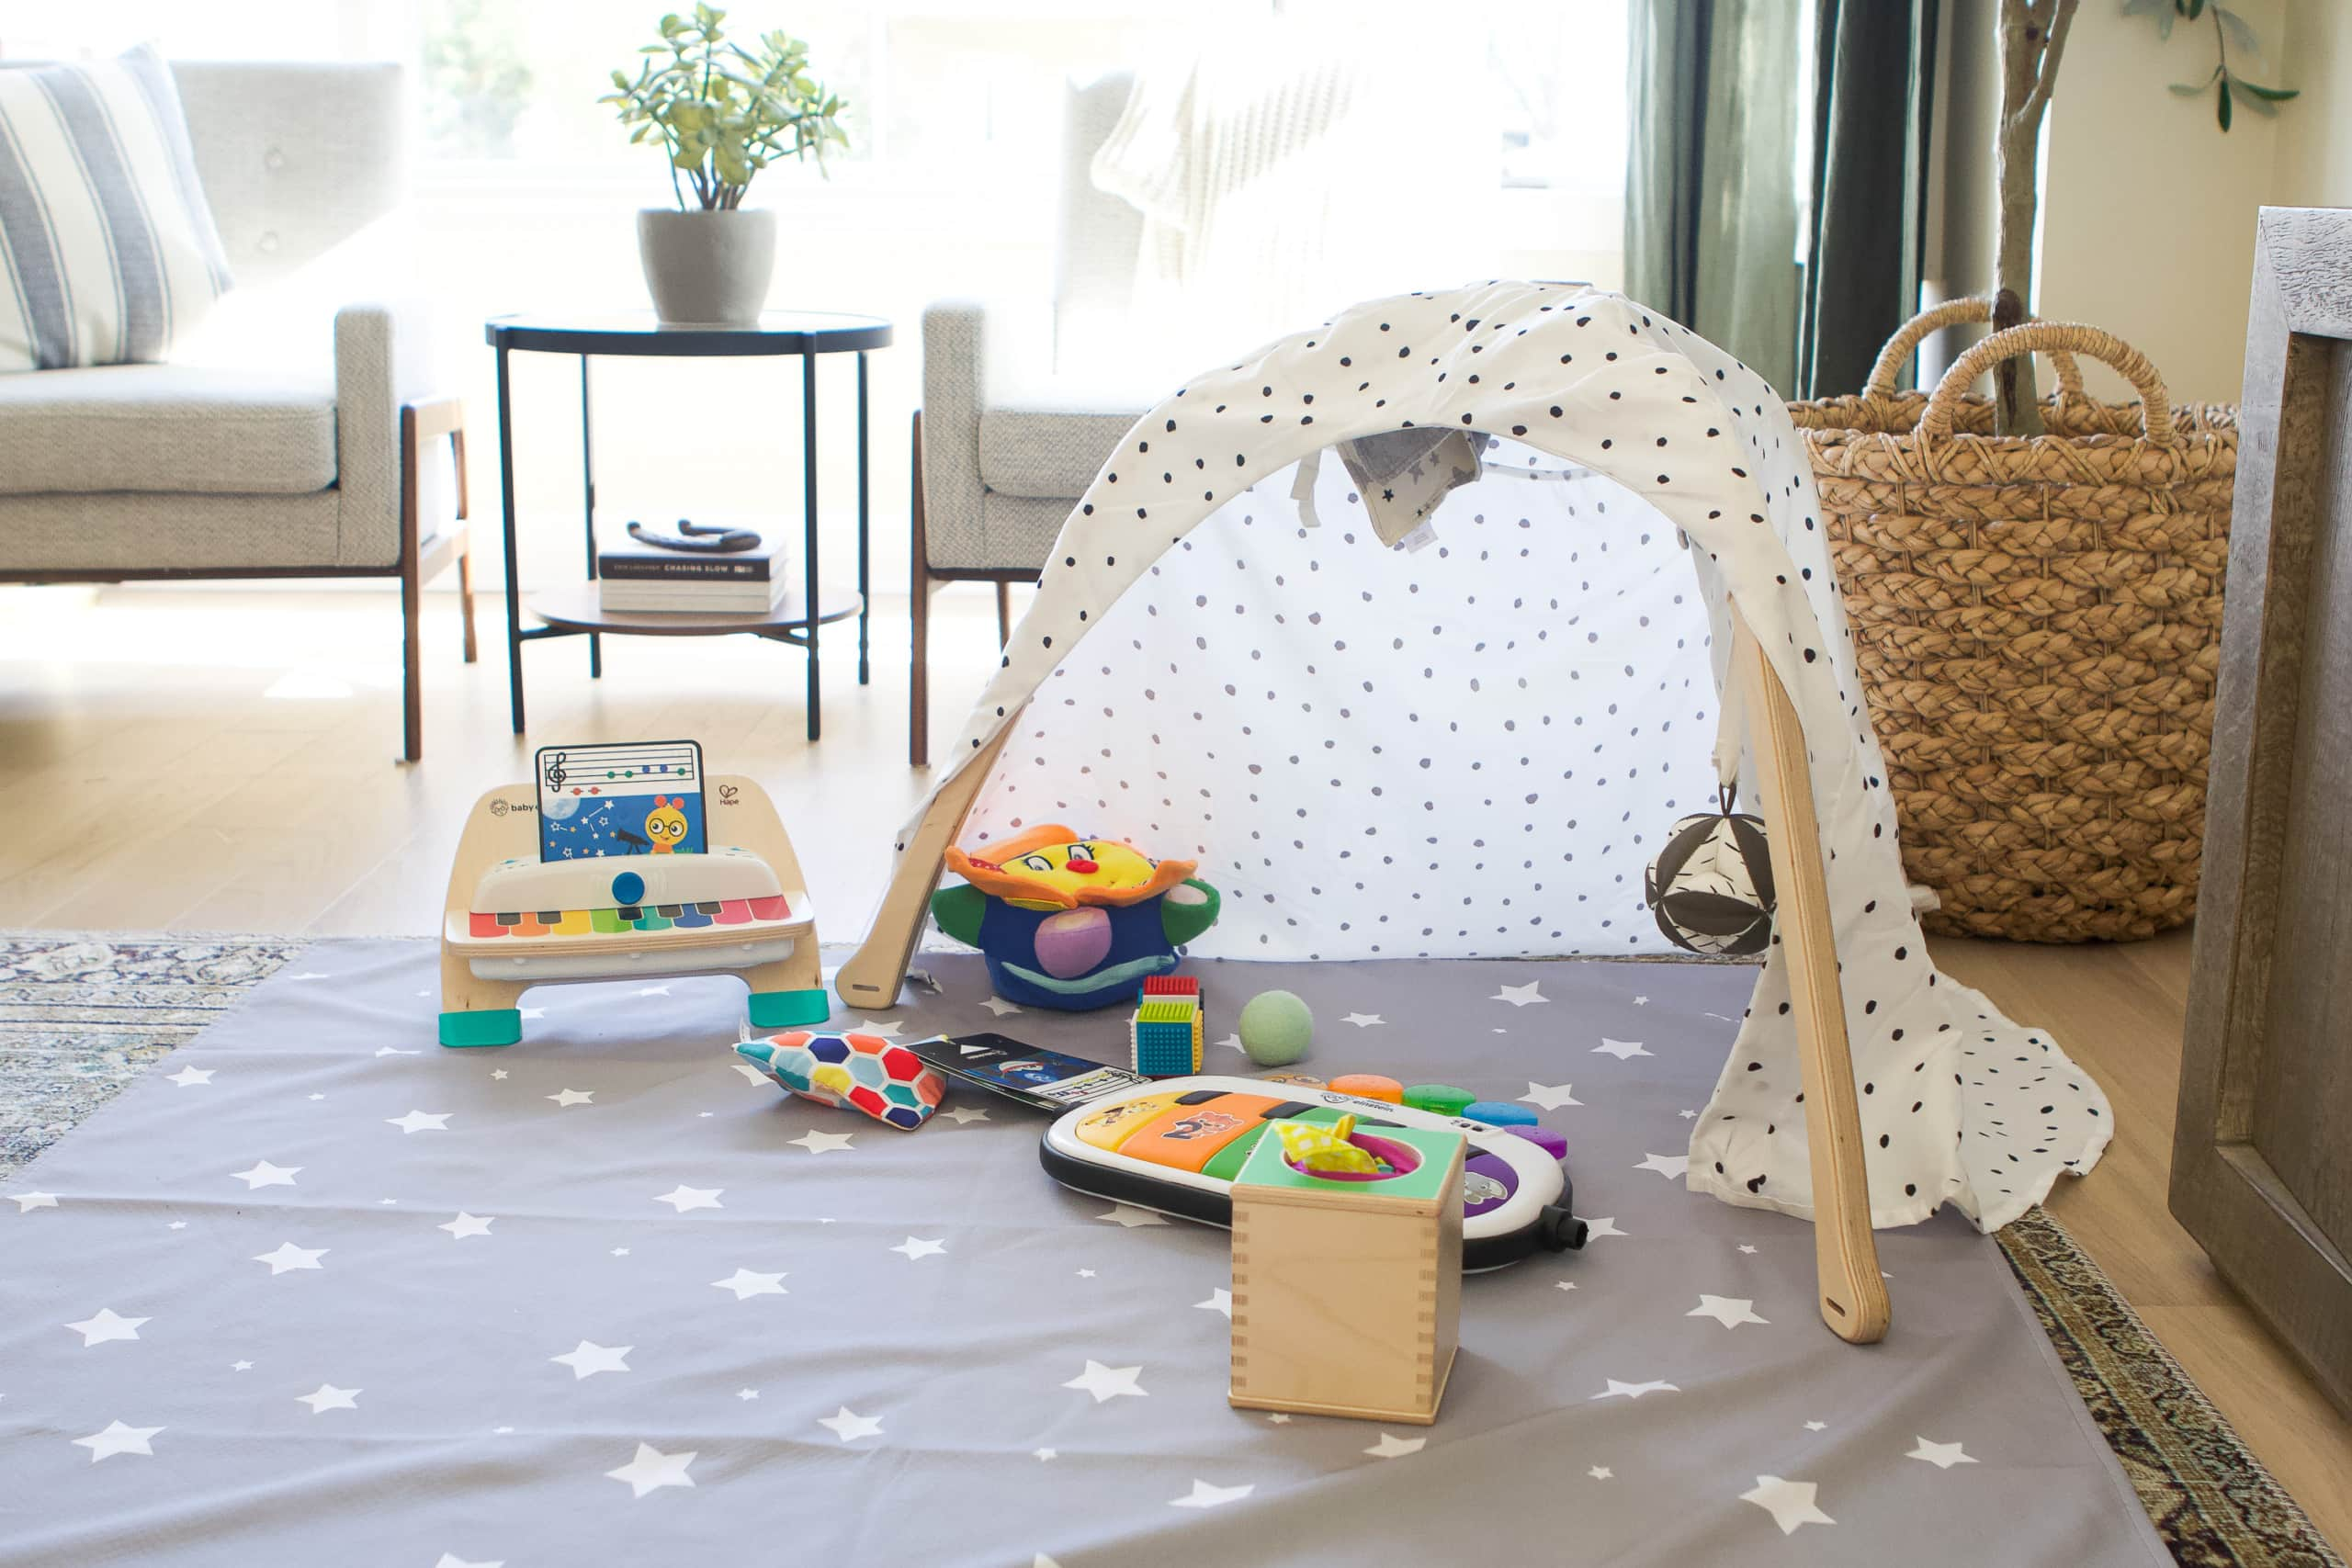 Rory's play area in the living room